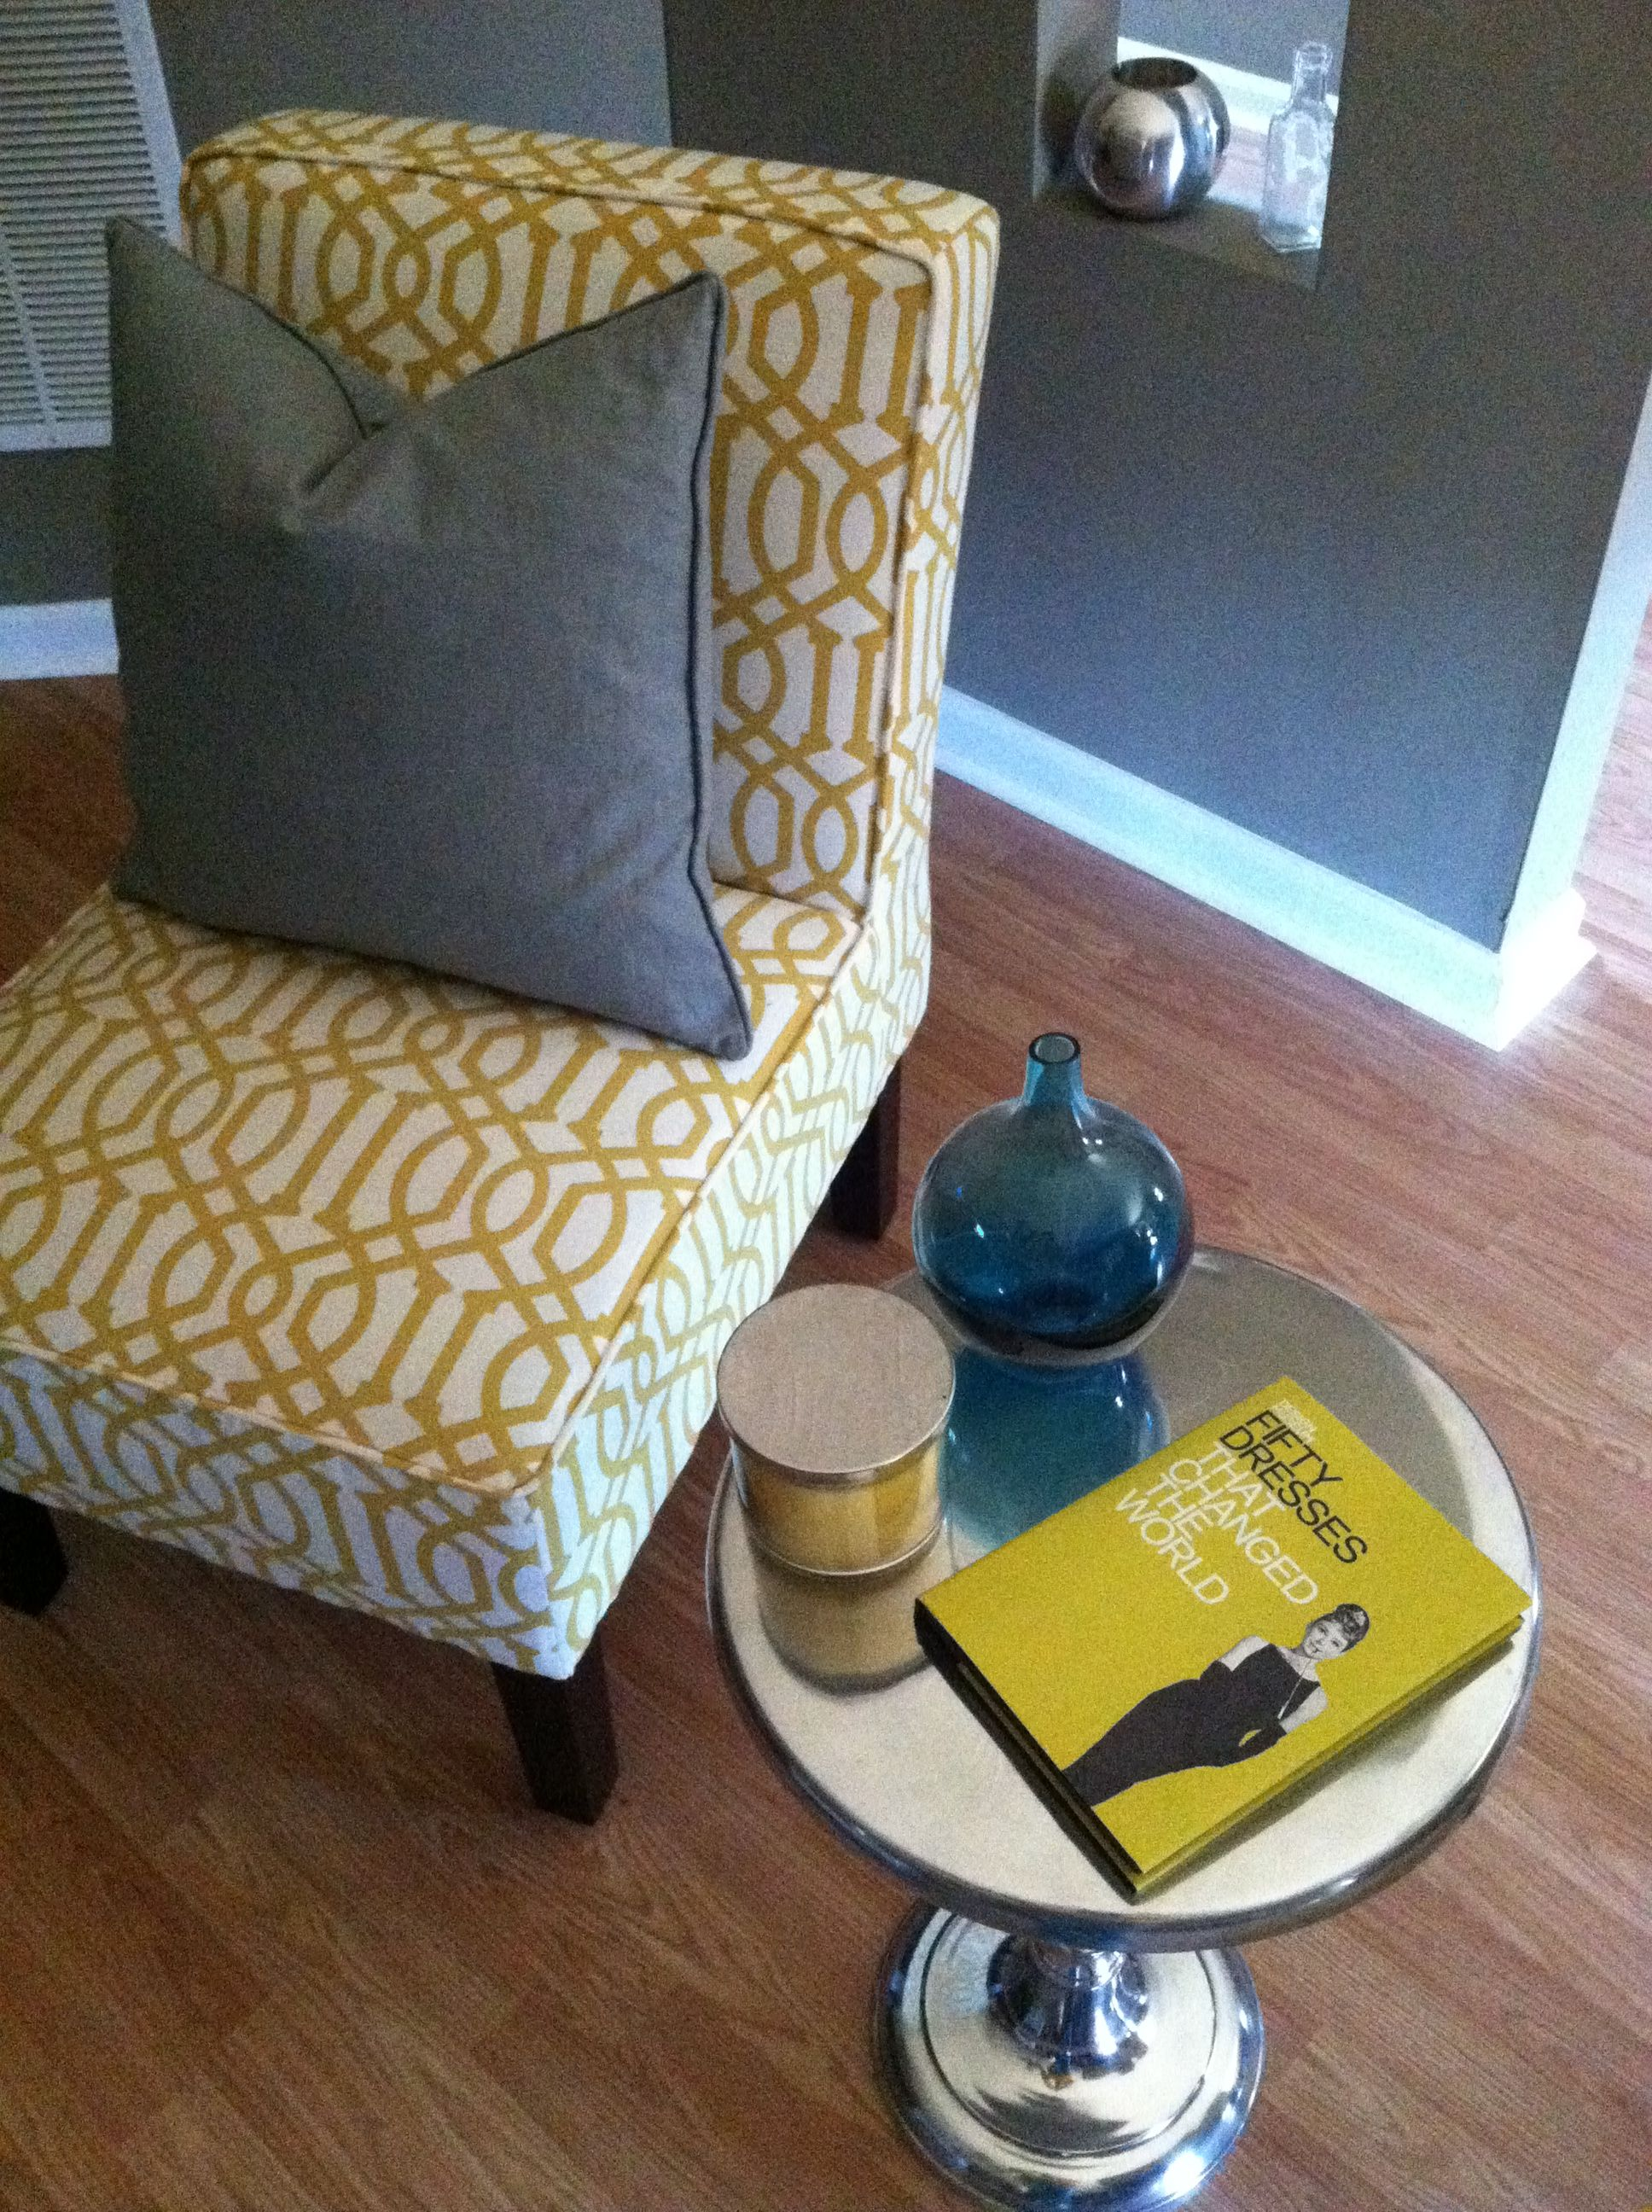 Yellow Teal And Gray Decor Chair From Target Table From